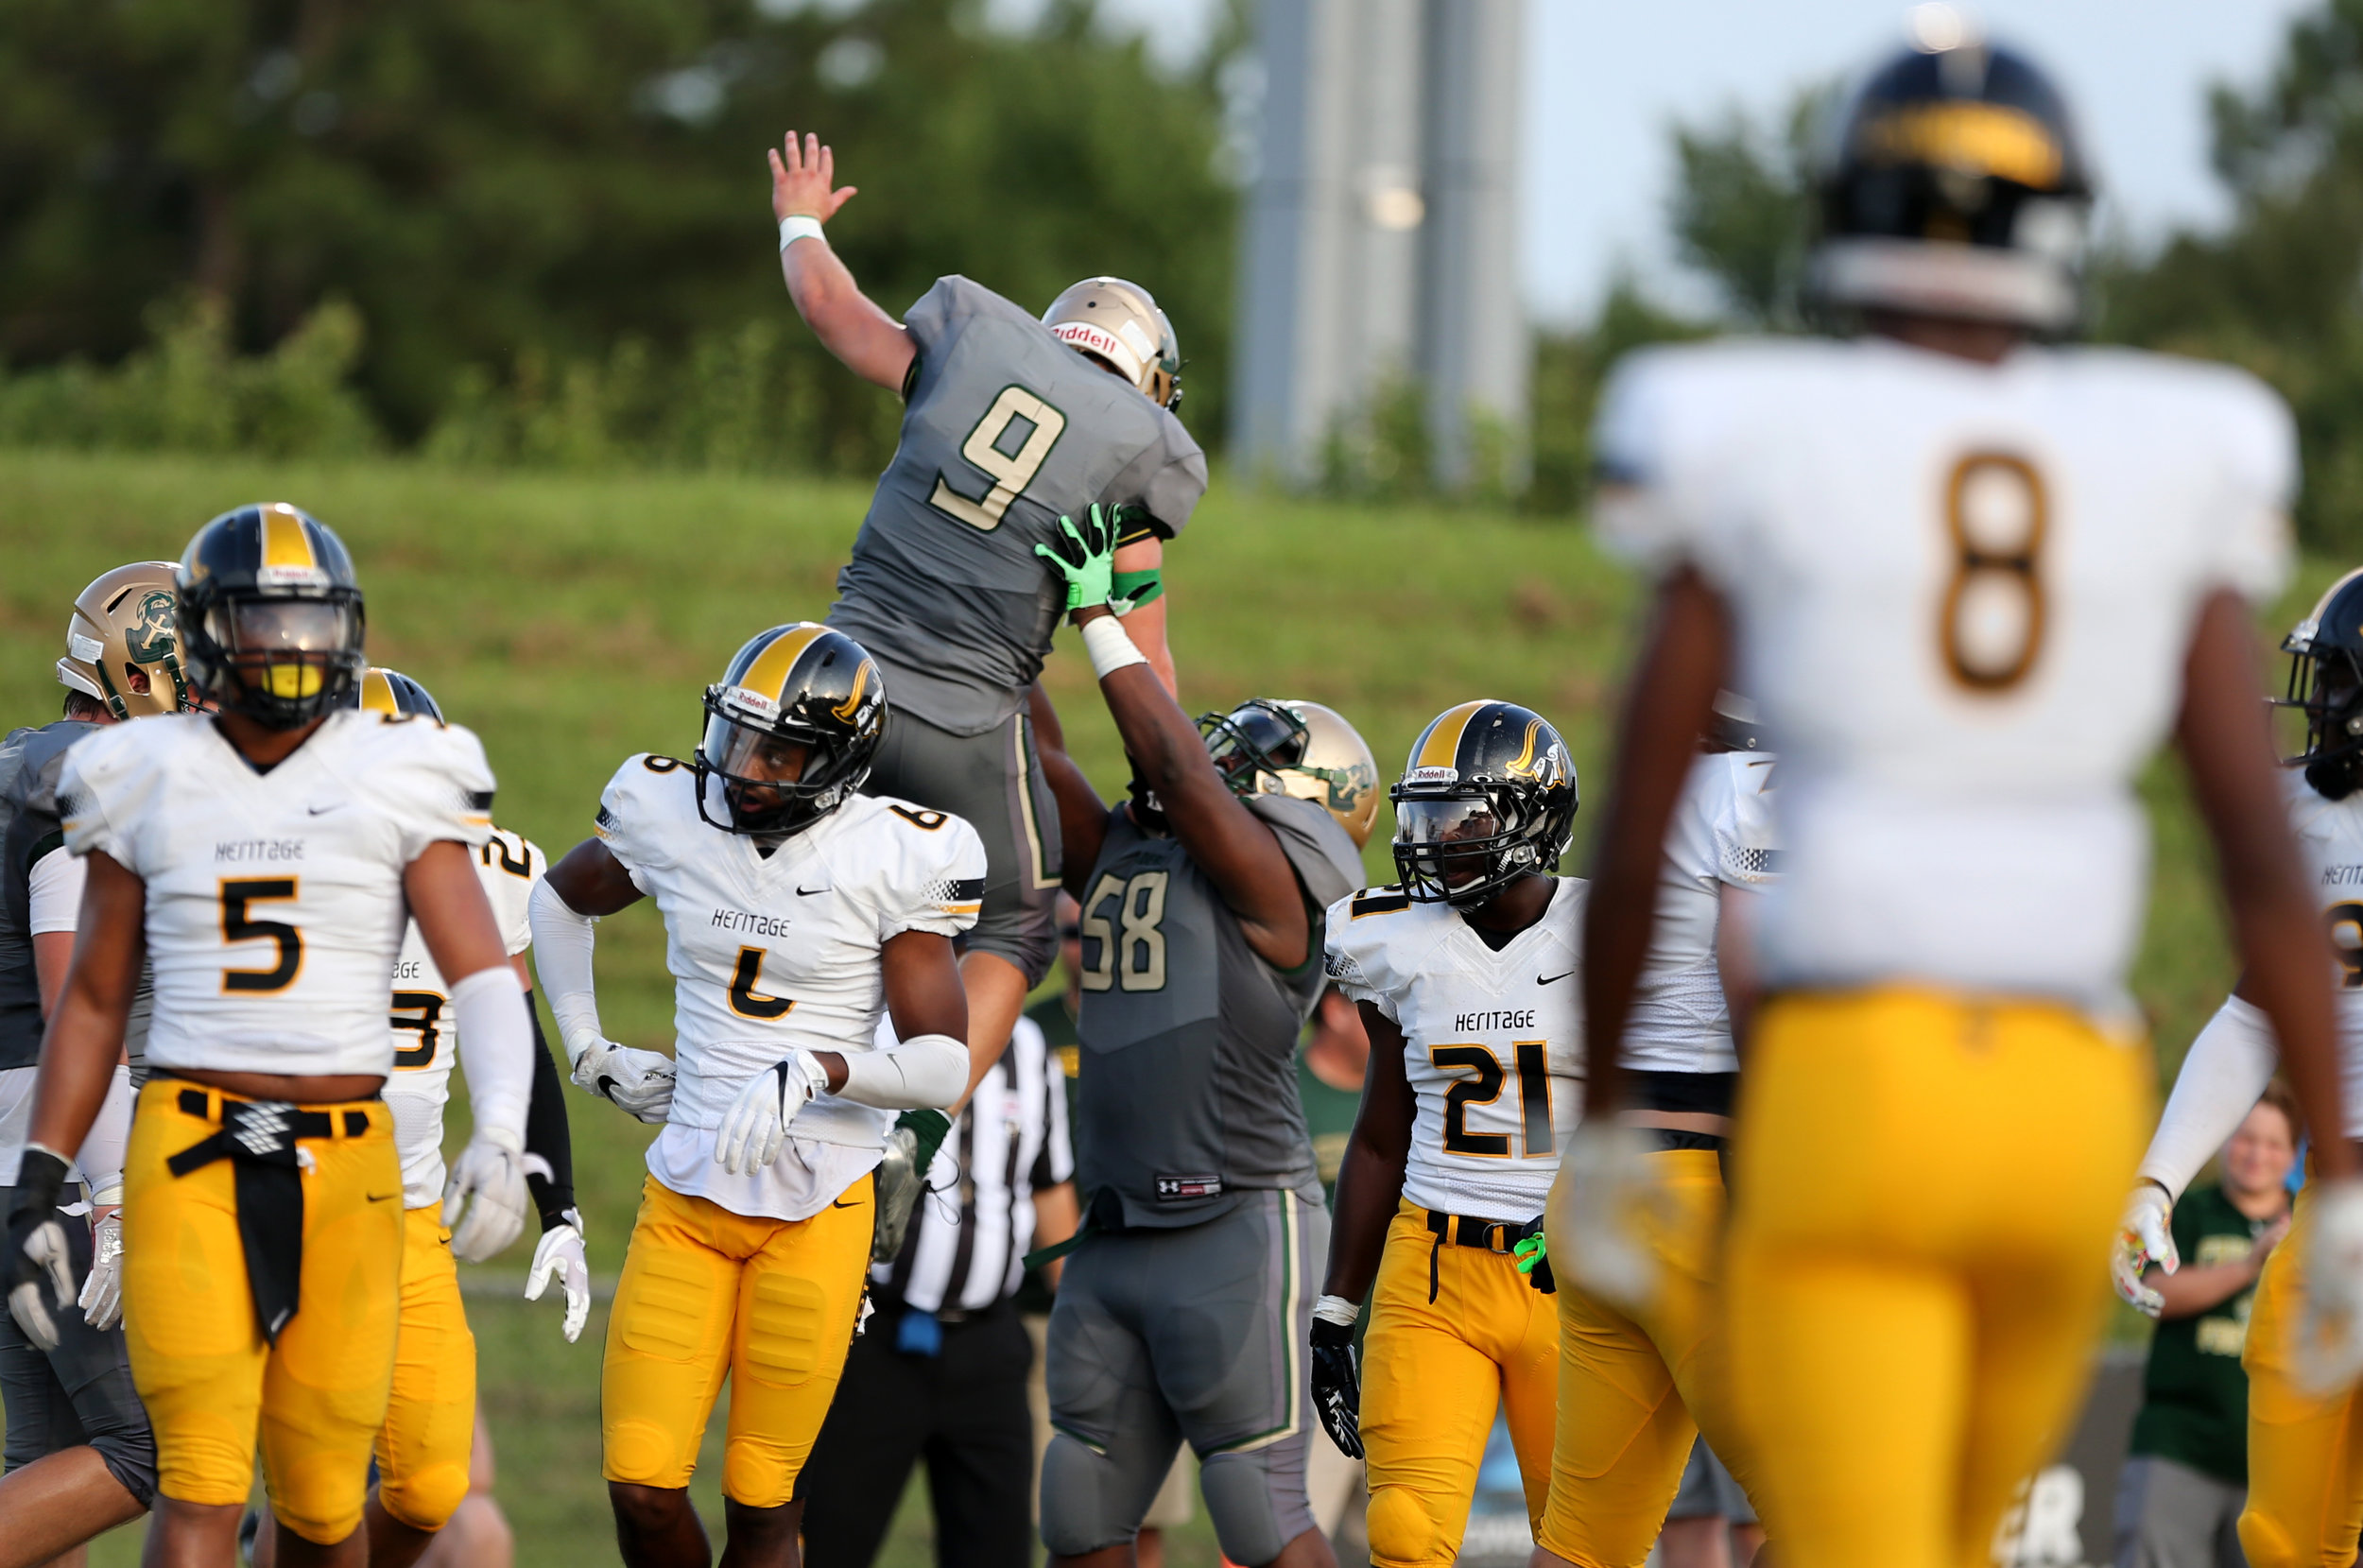 Bishop Sullivan's Jake Low is raised in the air by teammate Altrique Barlow after Low scored a touchdown against American Heritage during the Crusaders' 14-7 loss, Saturday, August 26, 2017 at the Sportsplex in Virginia Beach.